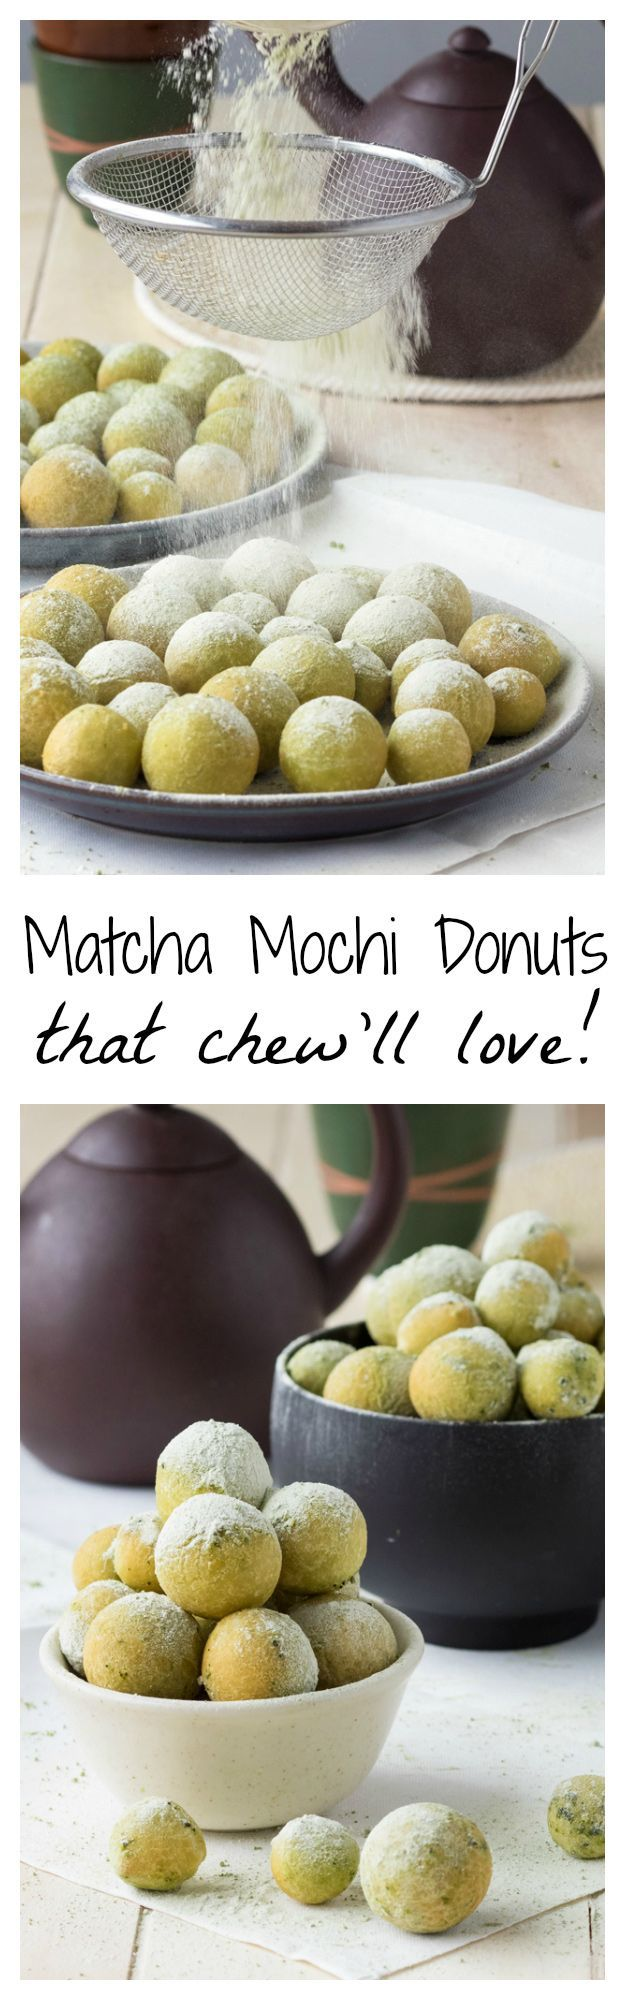 You get the irresistible freshness of a donut, the addictive chewiness of mochi and the alluring taste of matcha green tea. Make these…